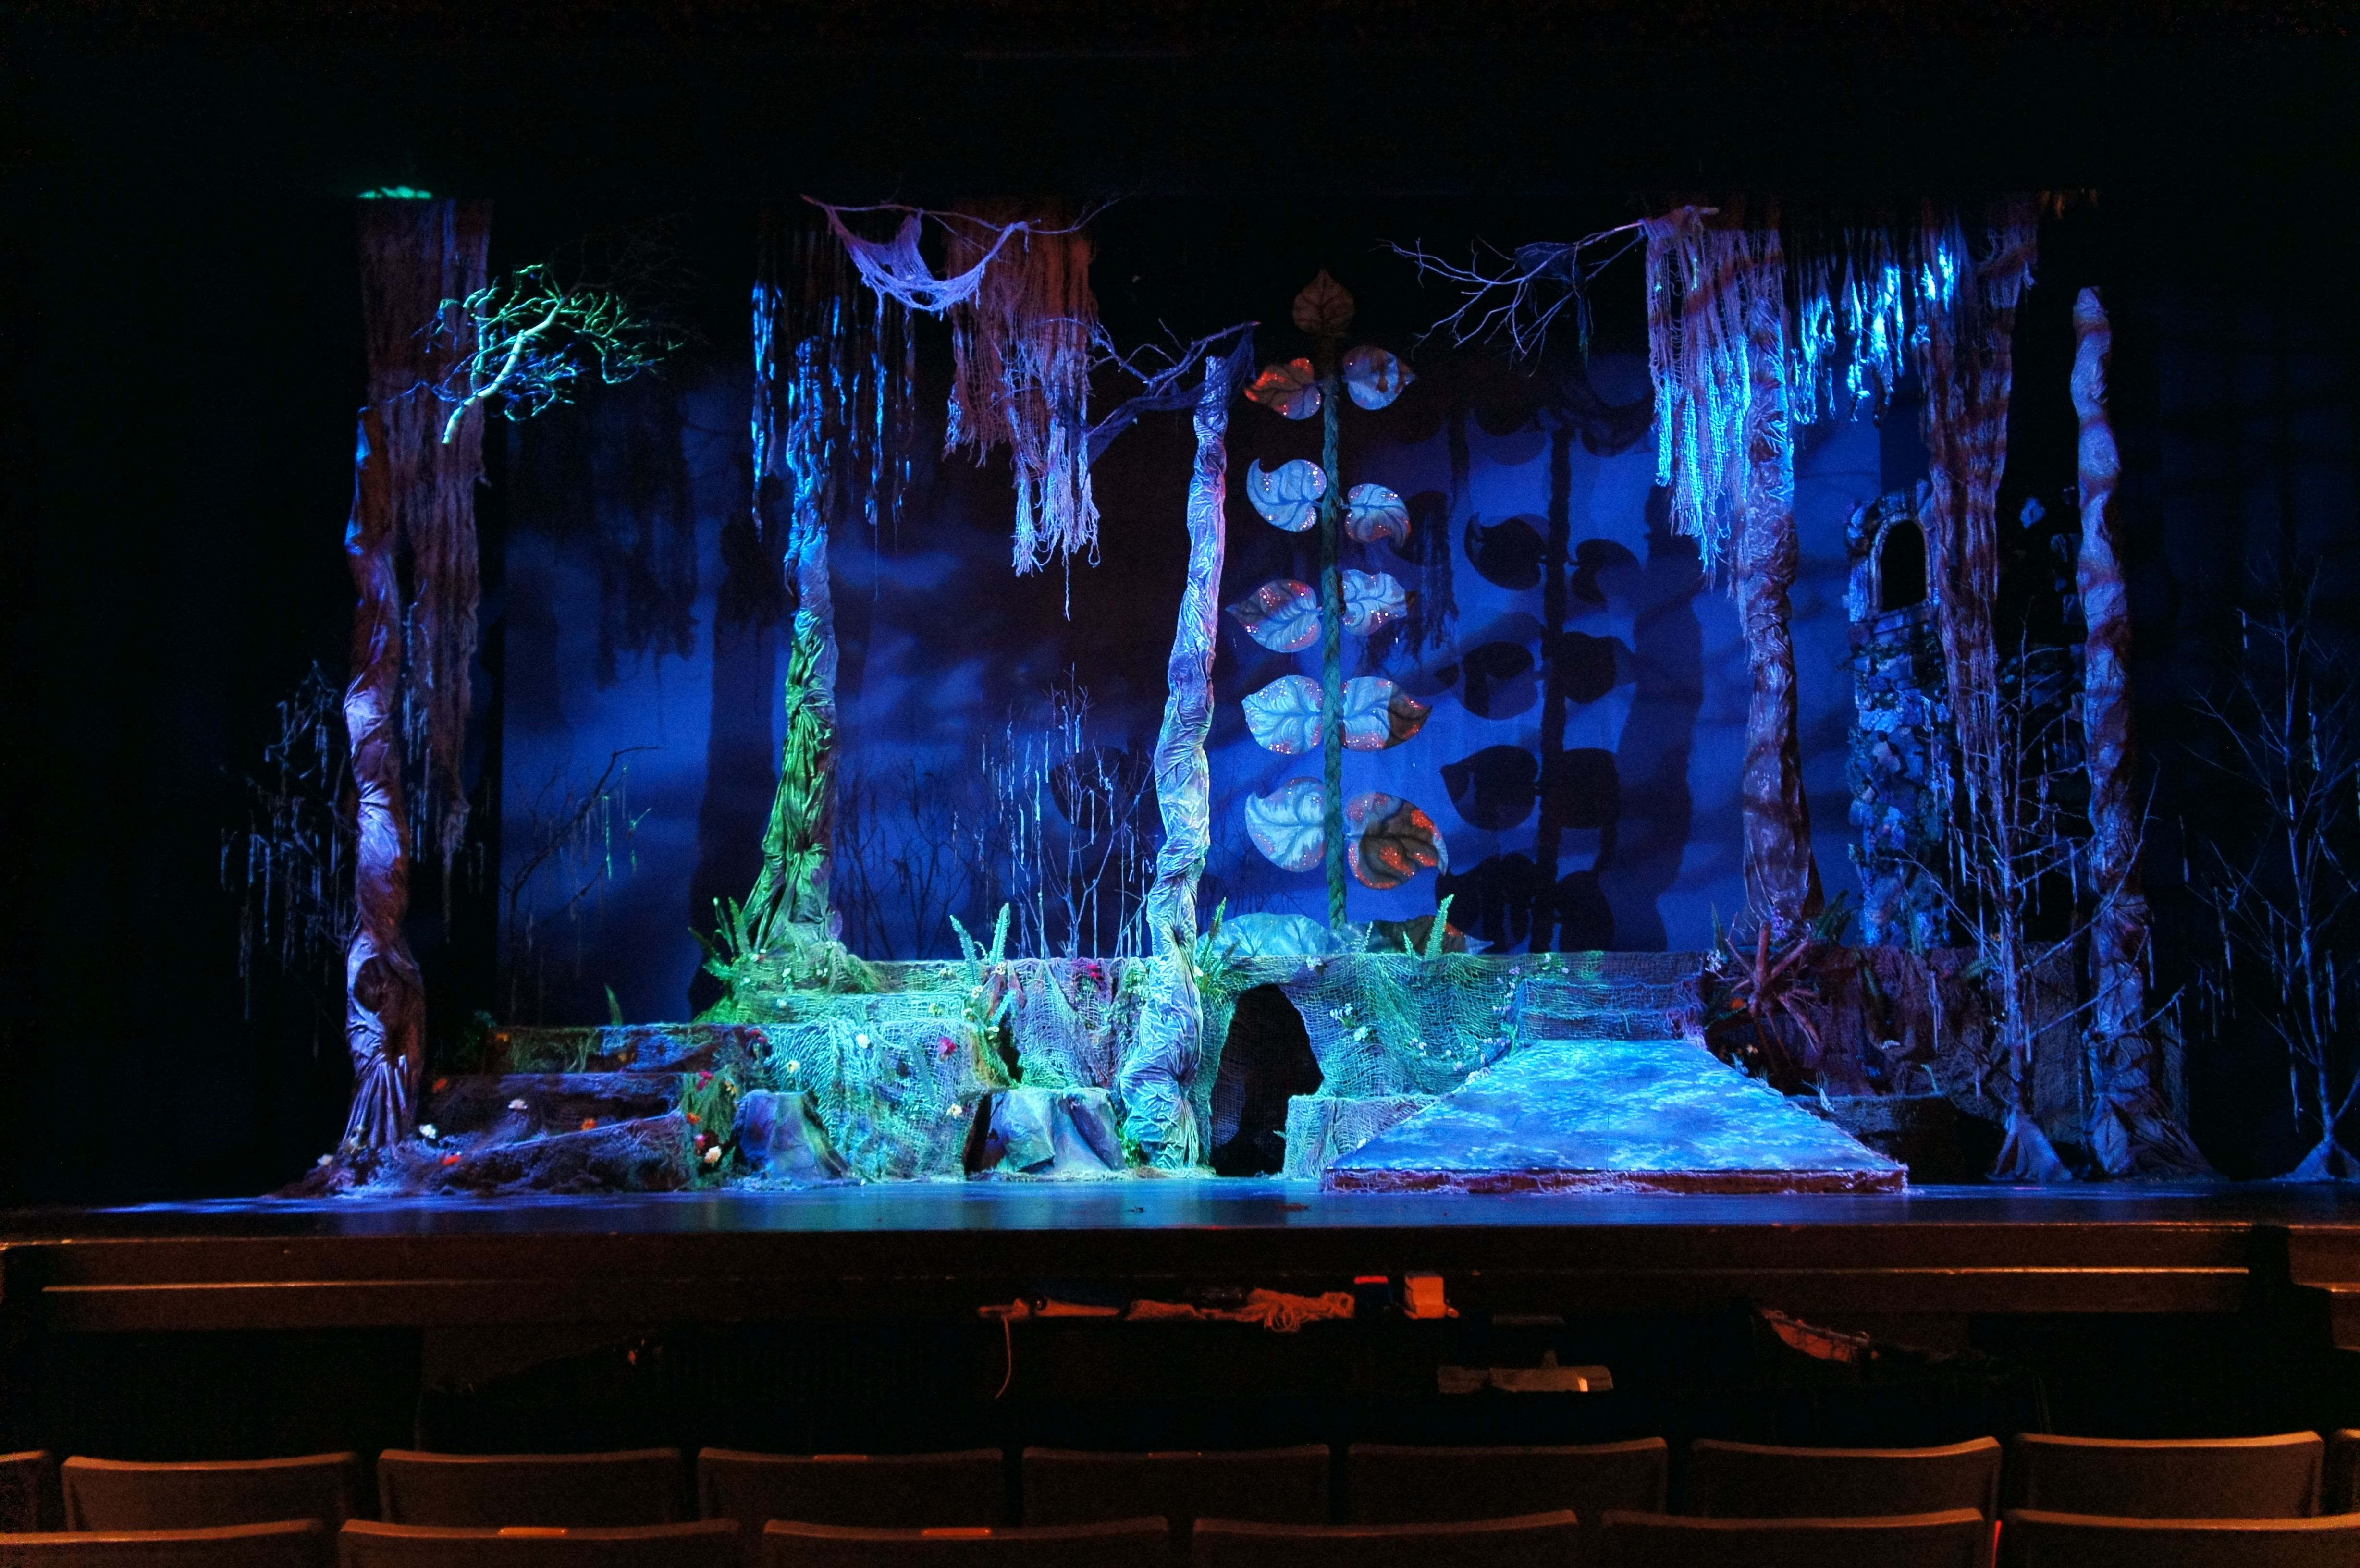 Pin By Laura Anthony On Lights Of Stage Stage Lighting Design Lighting Design Theatre Set Design Theatre